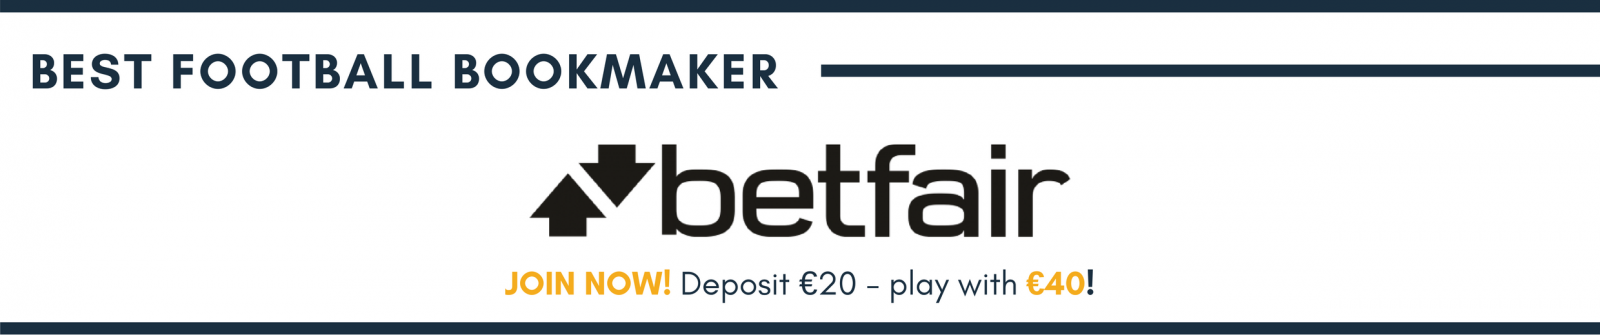 Best football bookmaker Betfair